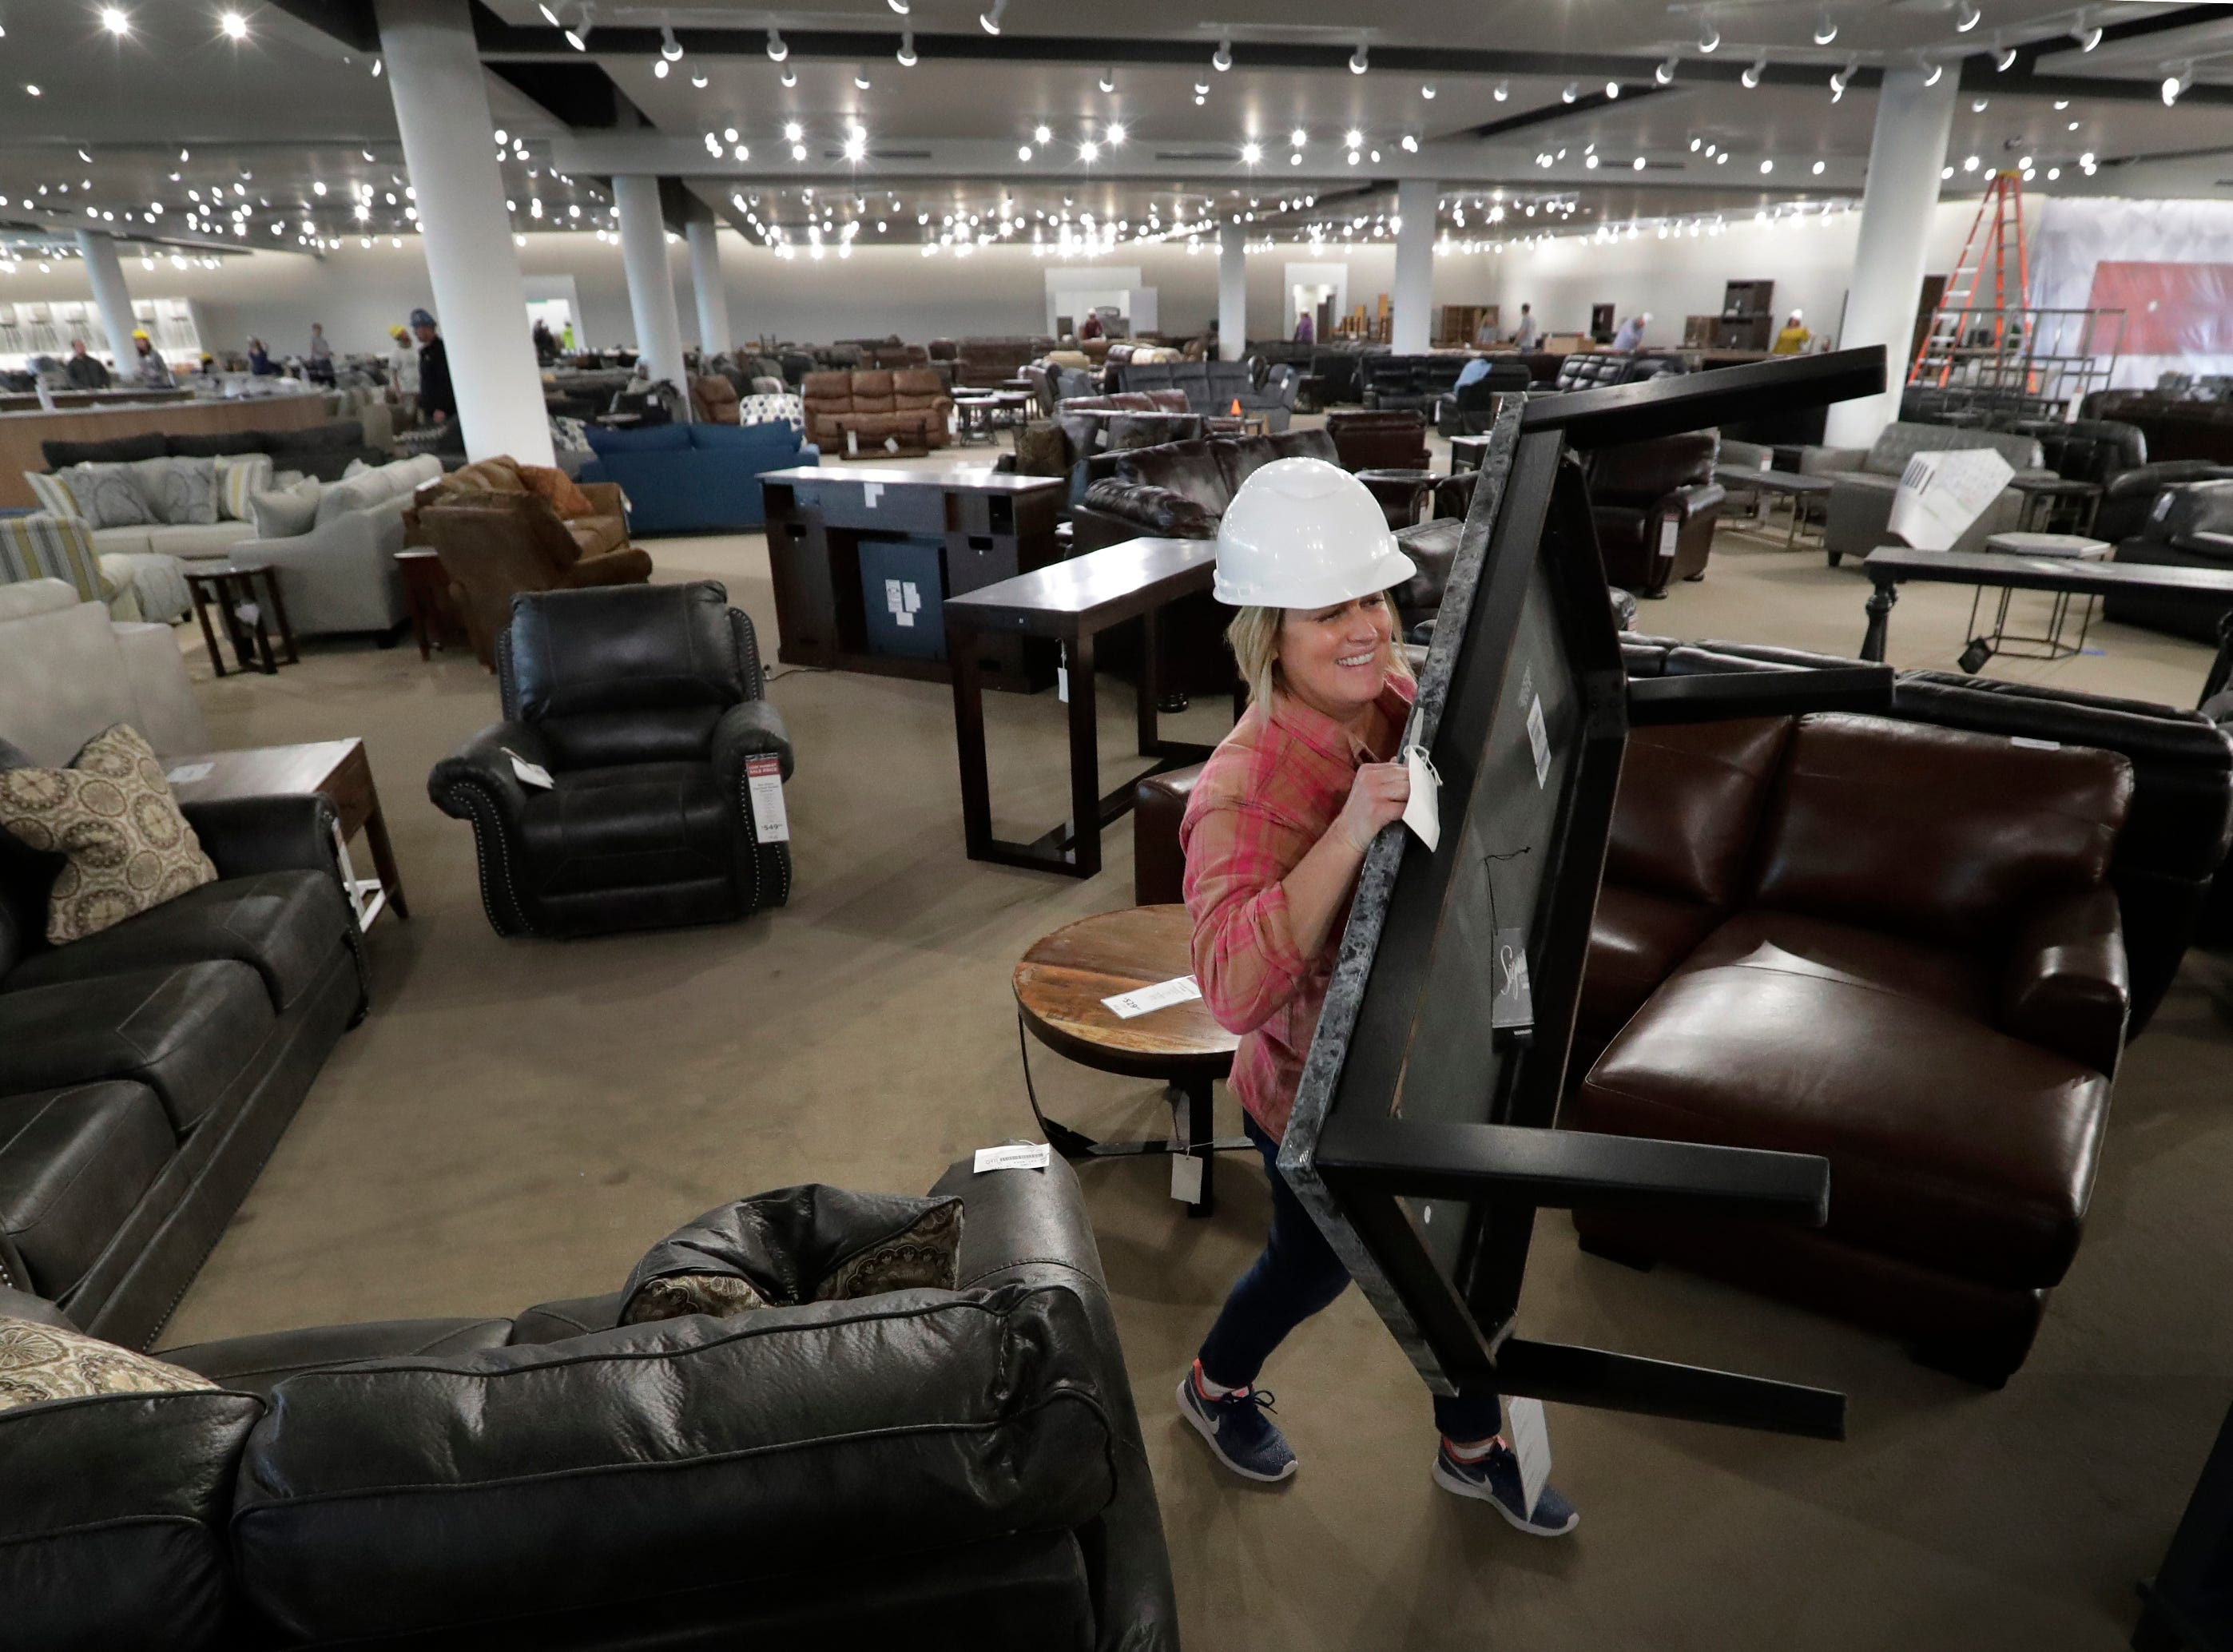 Assistant buyer Jenny Gagan sets up furniture vignettes at the new WG&R store Thursday, Oct. 18, 2018, in Grand Chute, Wis. 